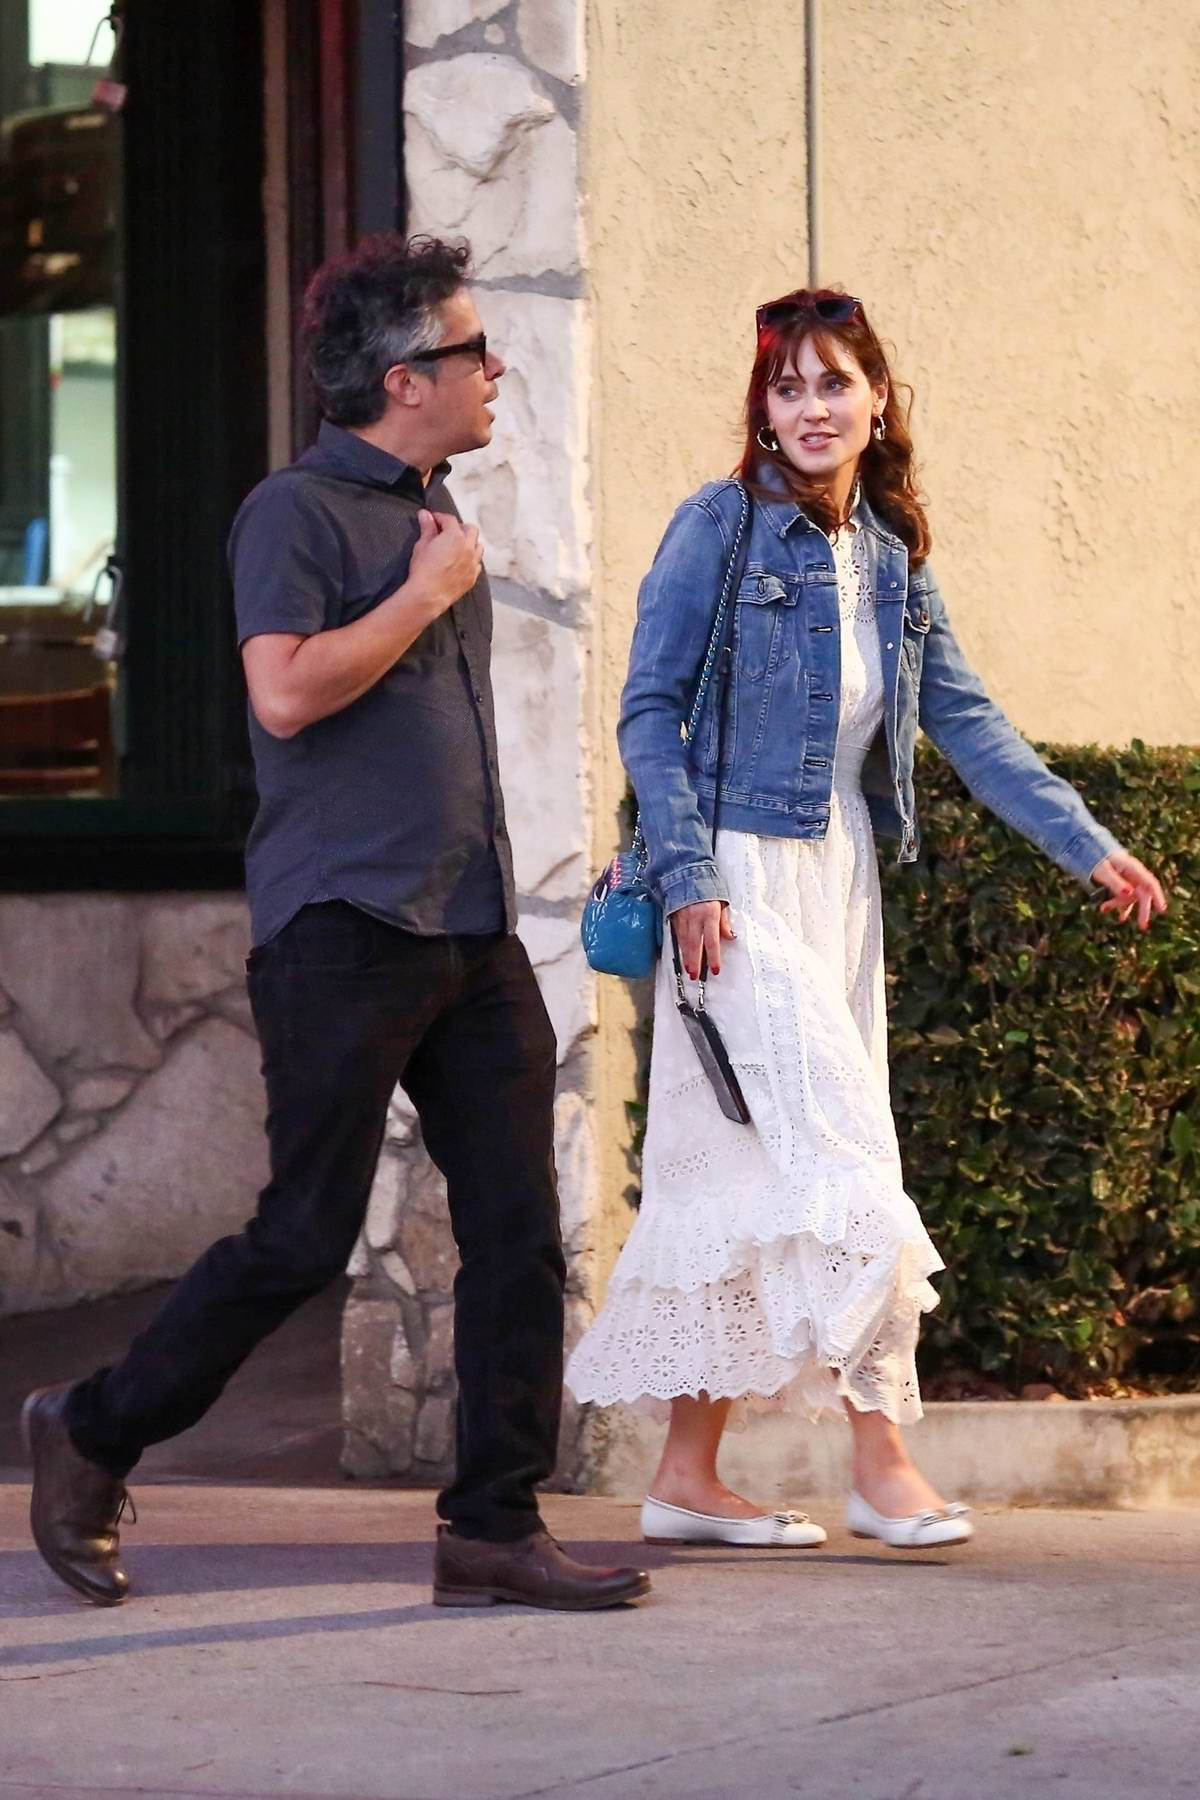 Zooey Deschanel looks lovely in a denim jacket with white dress while out with a friend in Los Angeles